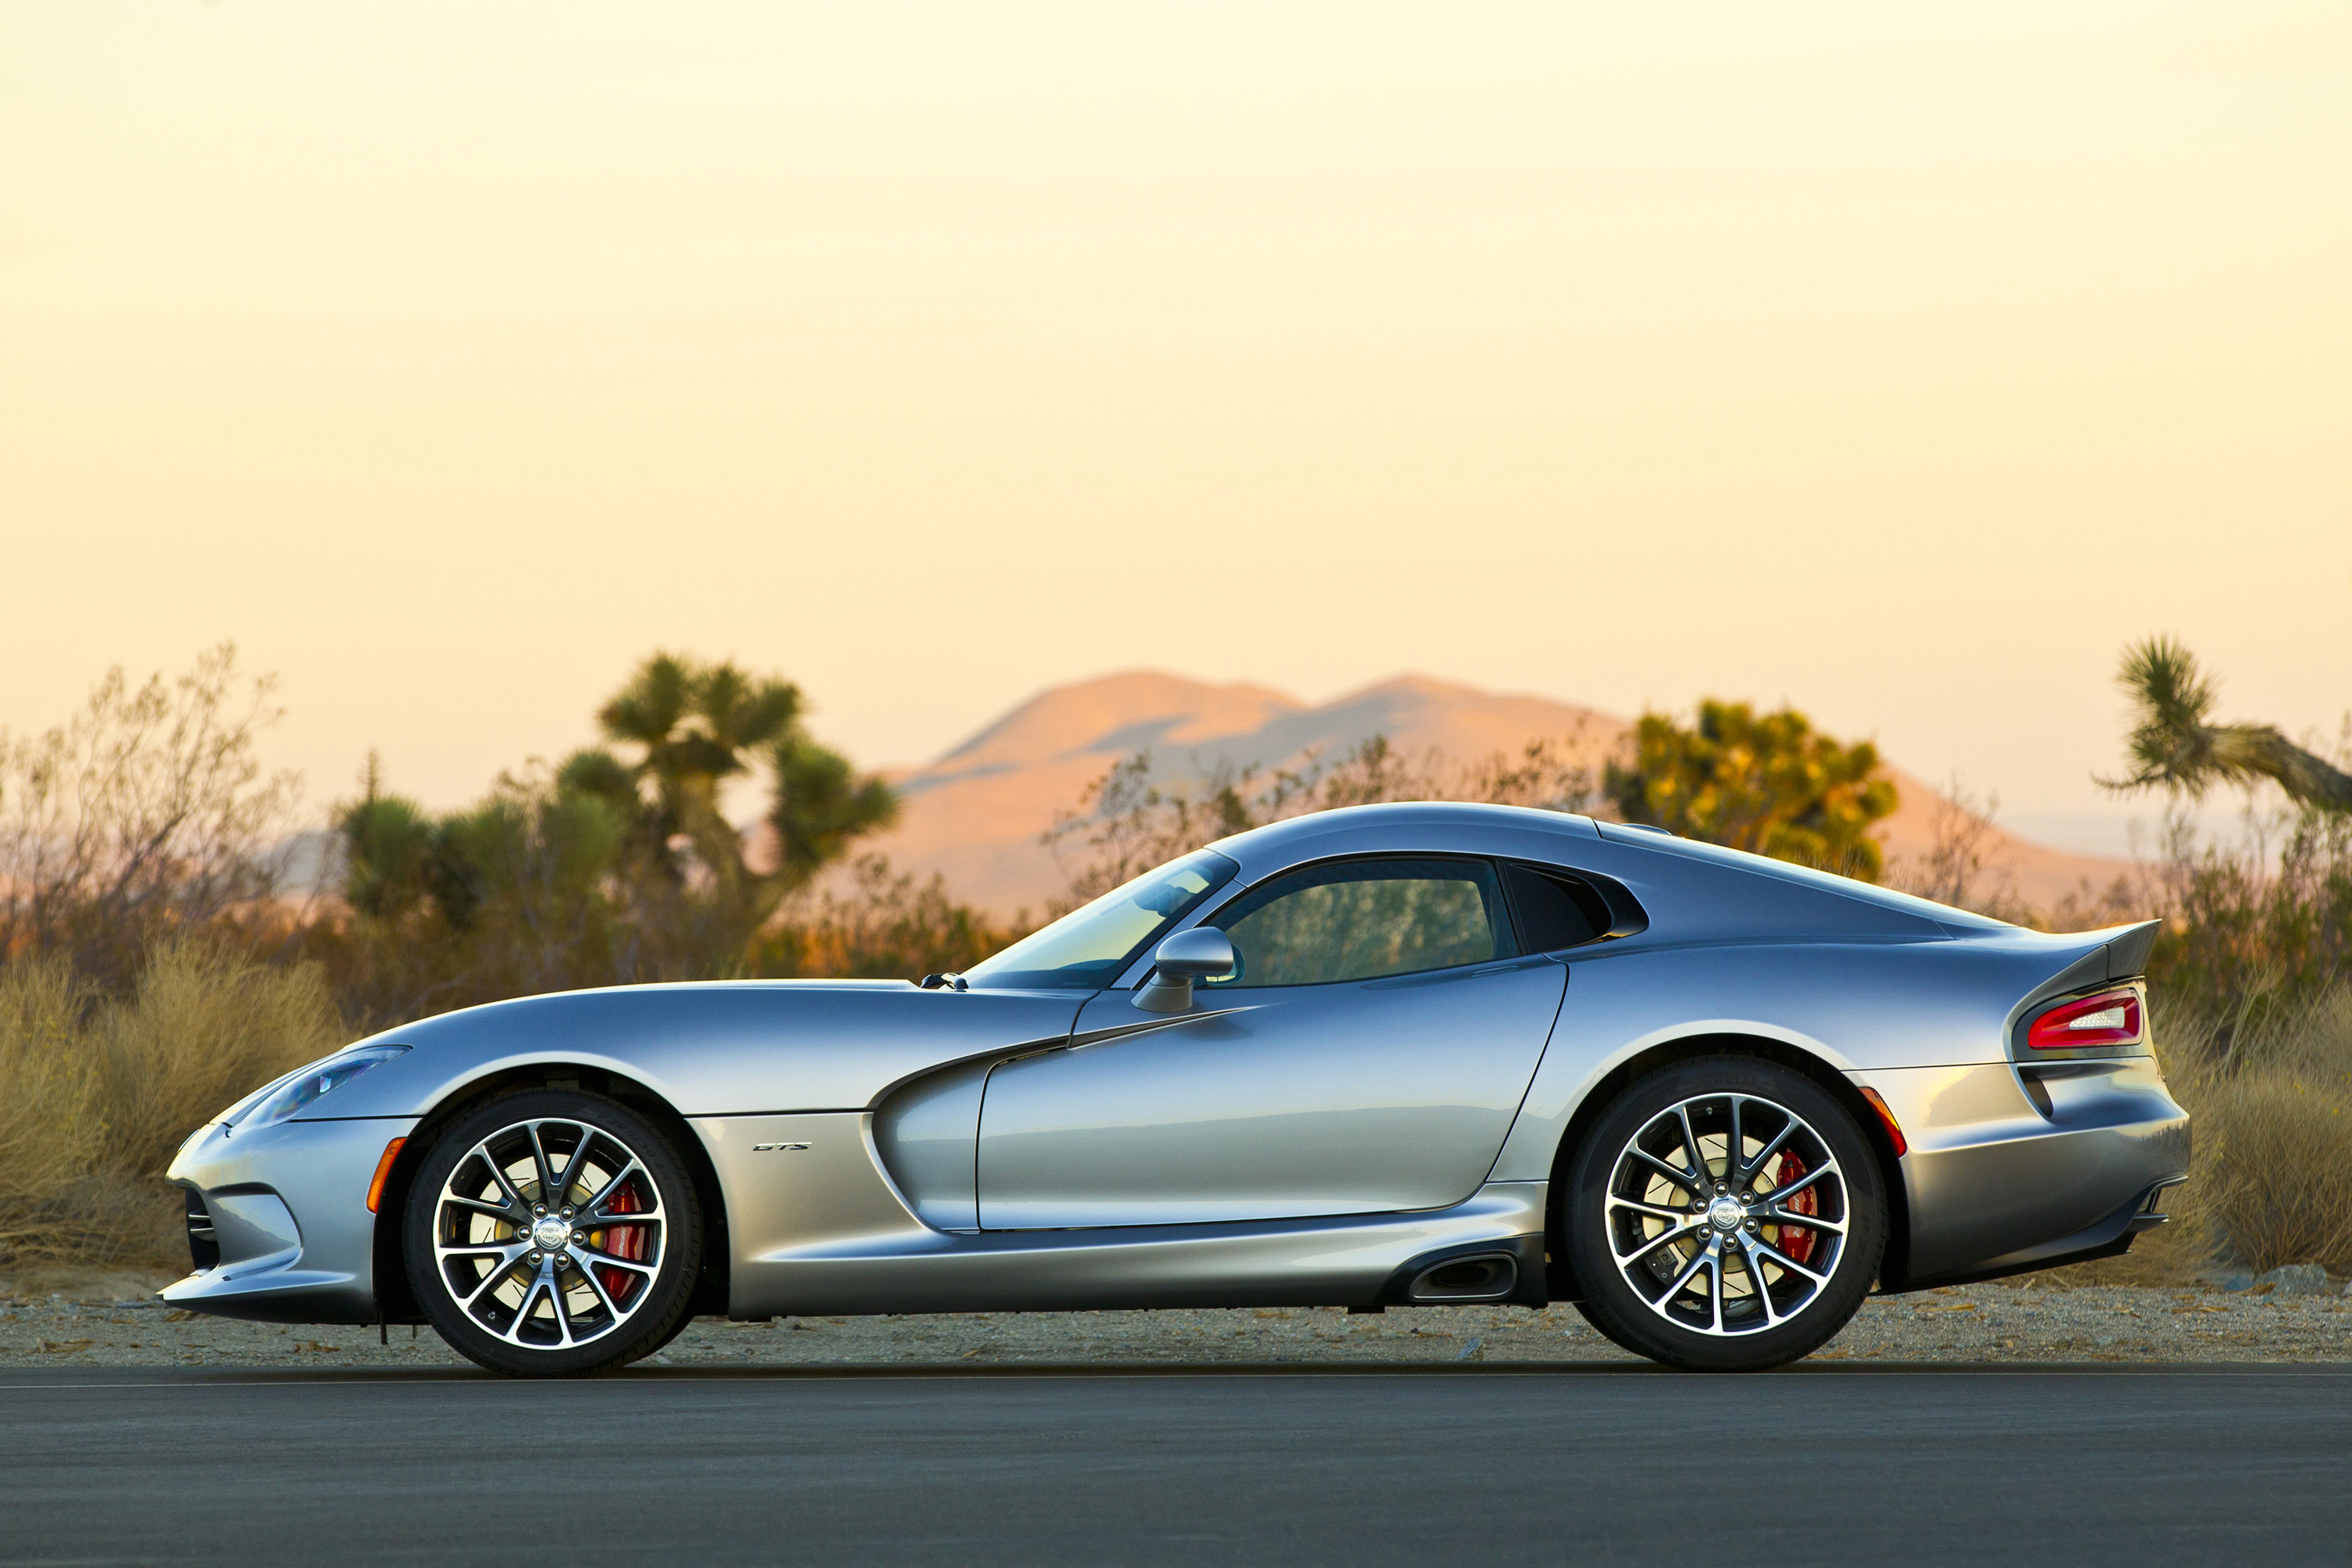 Daily Wallpaper 2015 Dodge Viper GTS I Like To Waste My Time 3000x2000